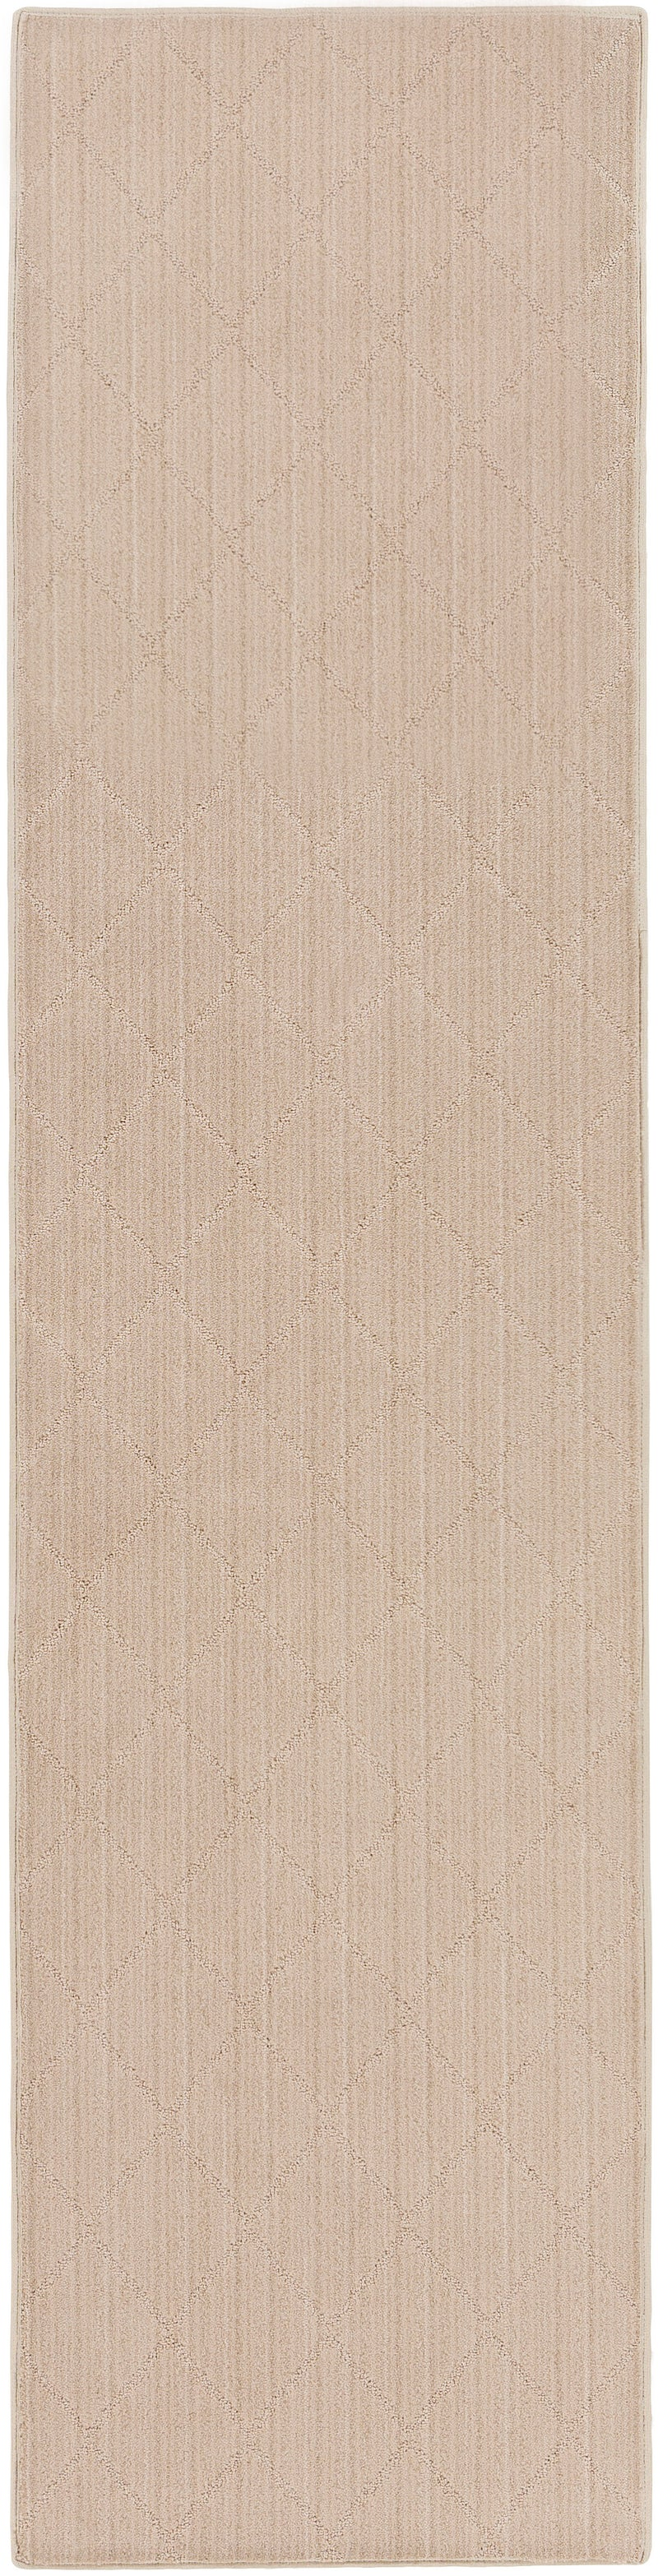 "Haywood HAW-1002 6"" Swatch Made to Order Rugs"